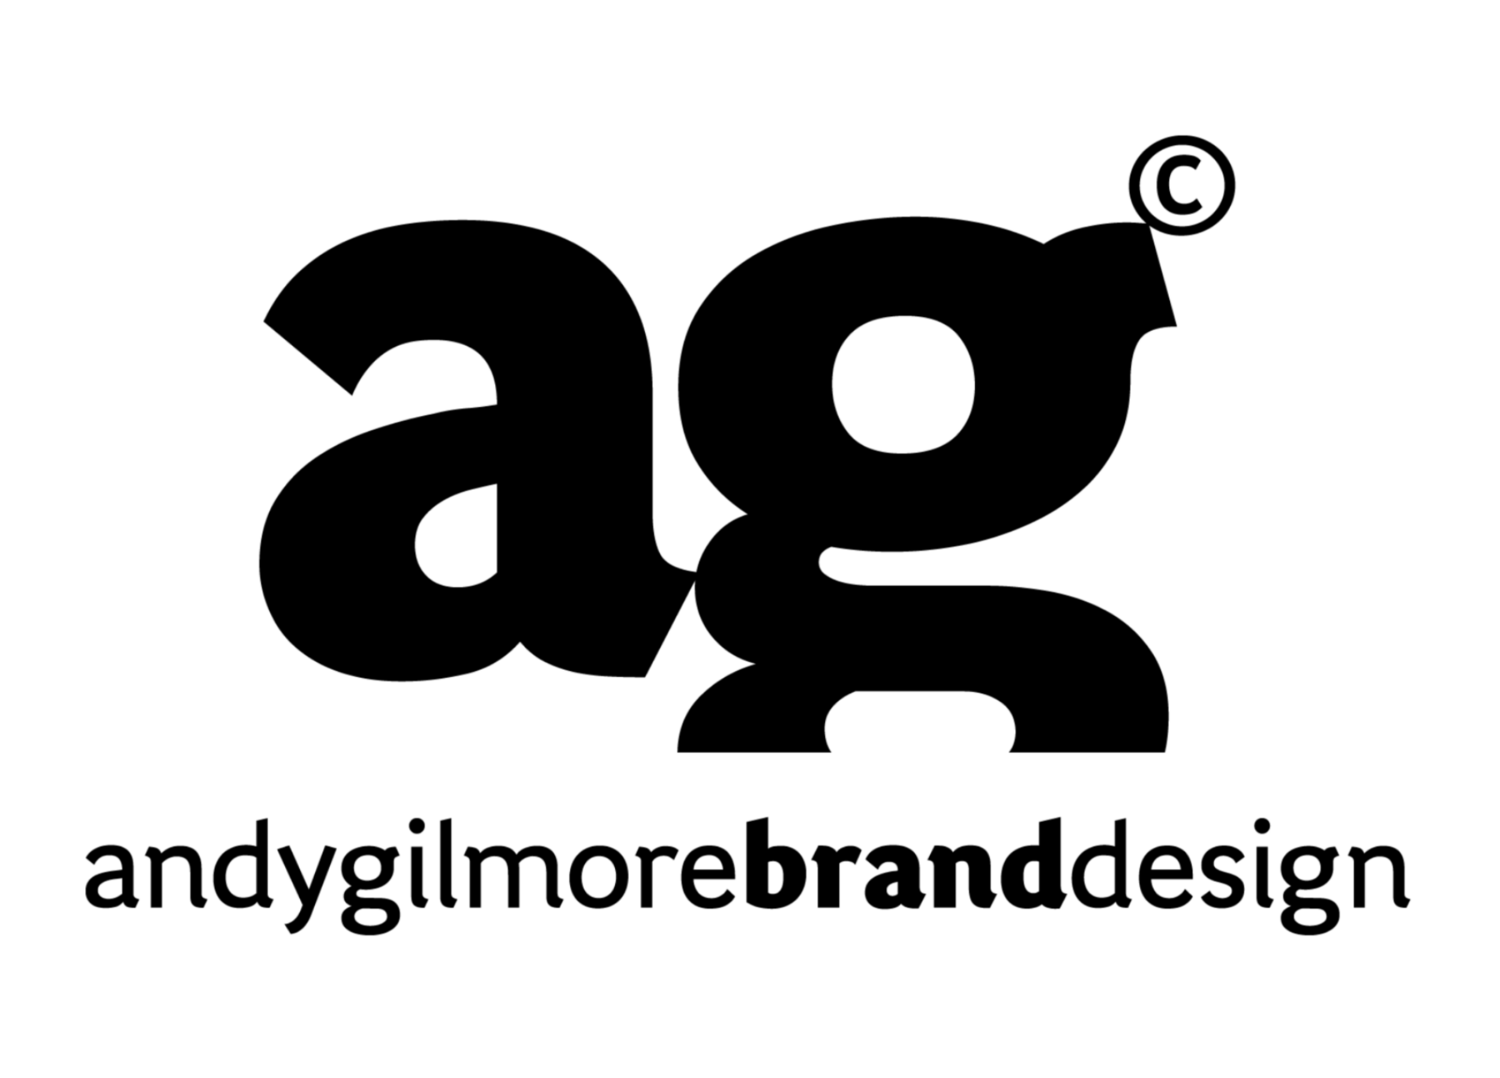 Andy Gilmore Brand Design